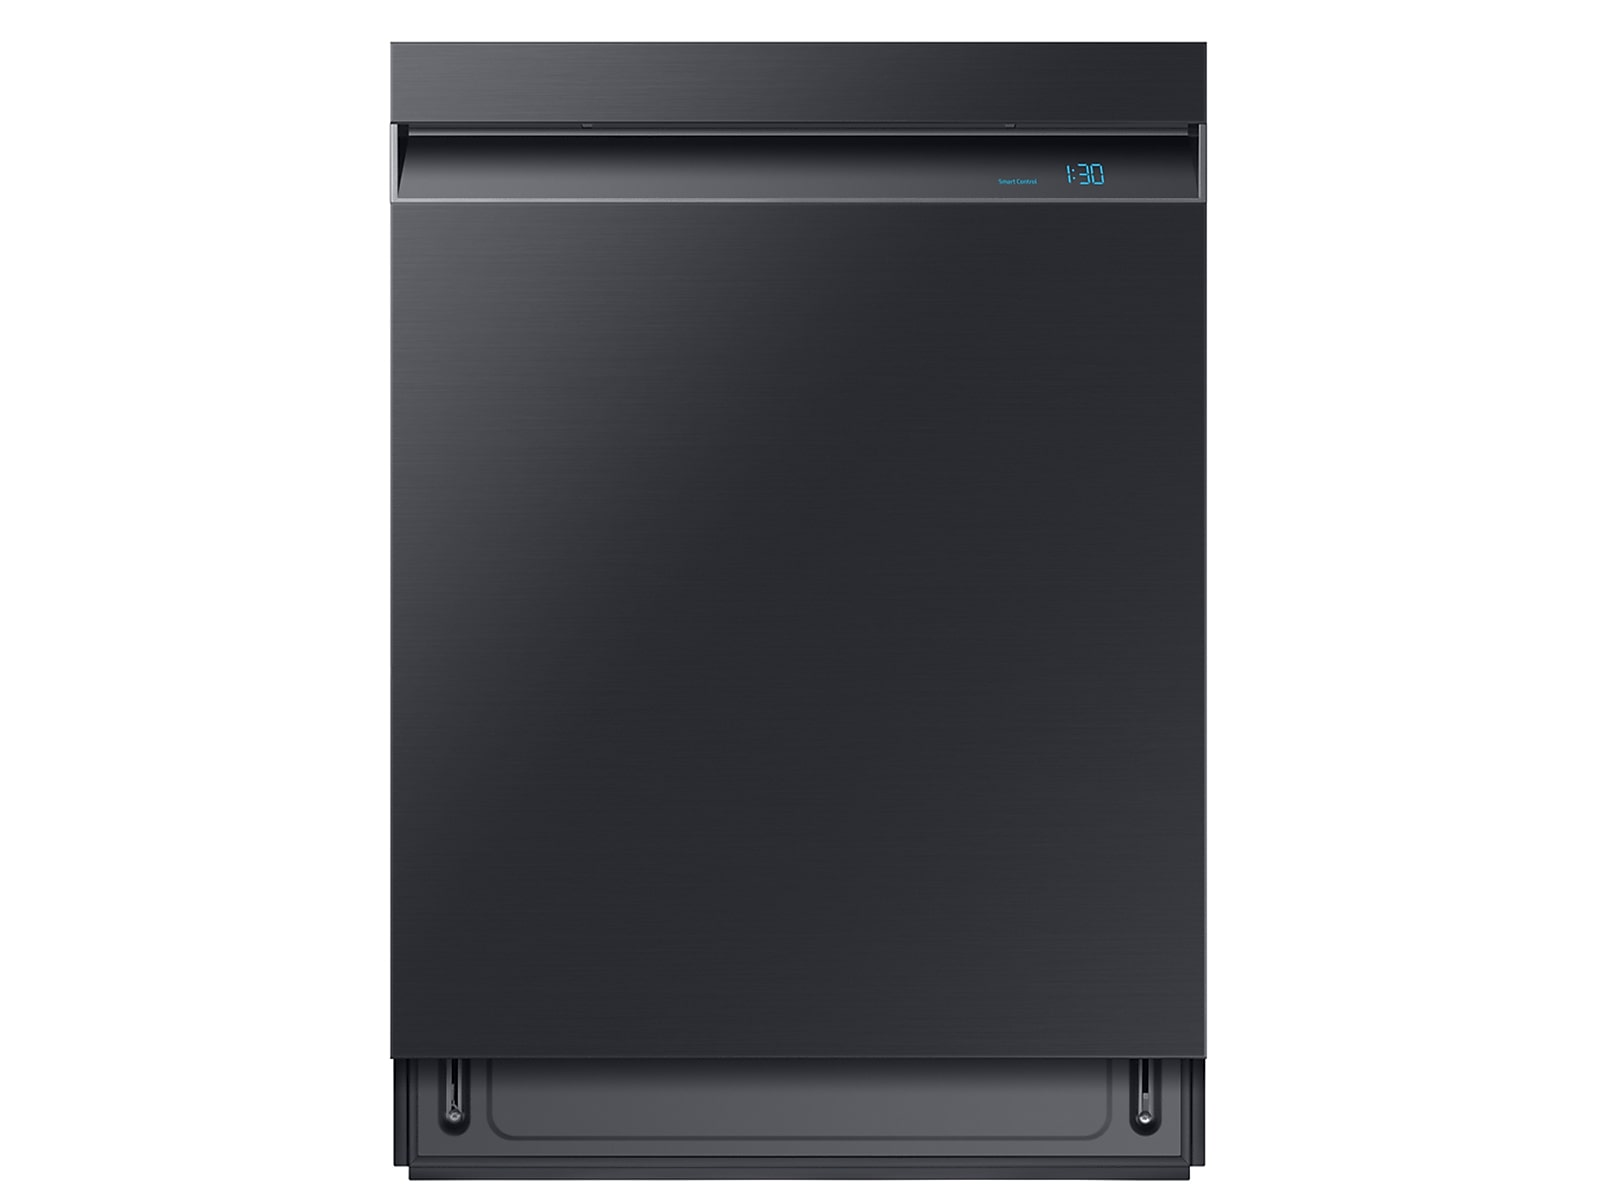 Samsung coupon: Samsung Smart Linear Wash 39dBA Dishwasher in Black Stainless Steel(DW80R9950UG/AA)